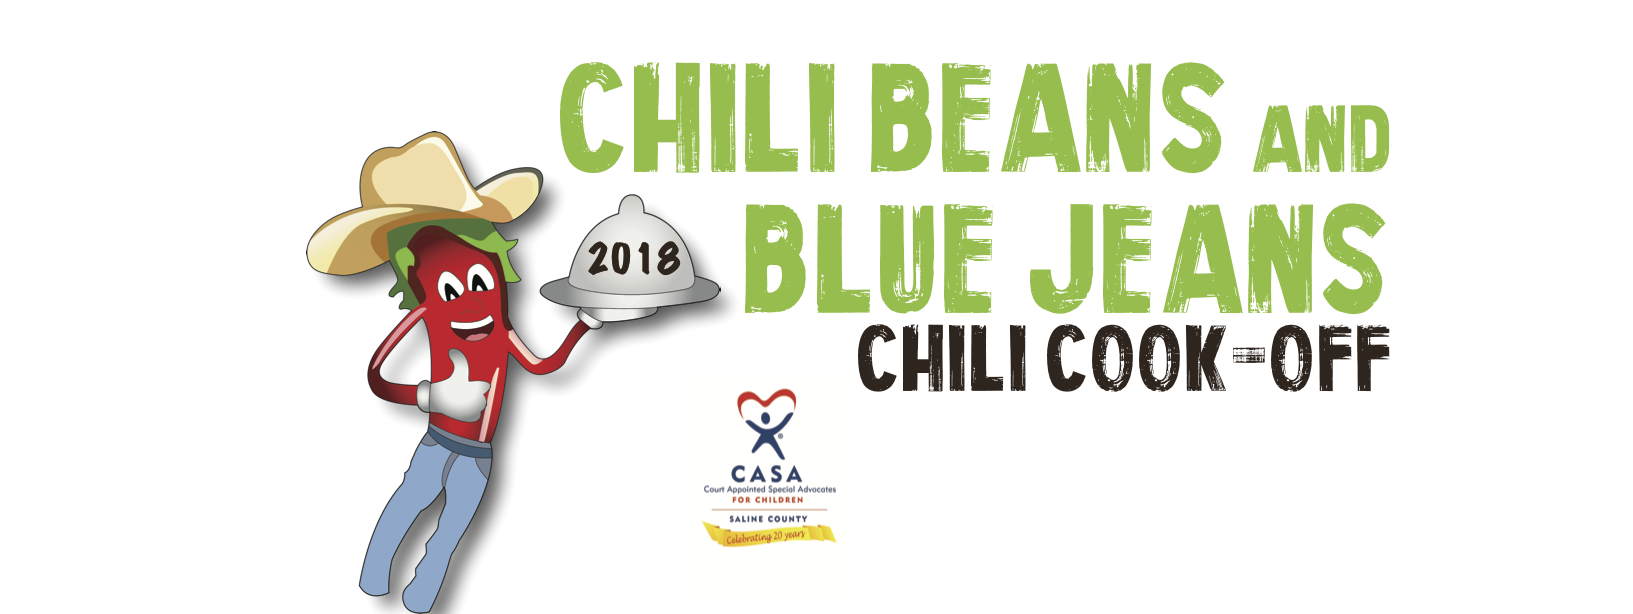 2018 Chili Beans and Blue Jeans Chili Cook-Off